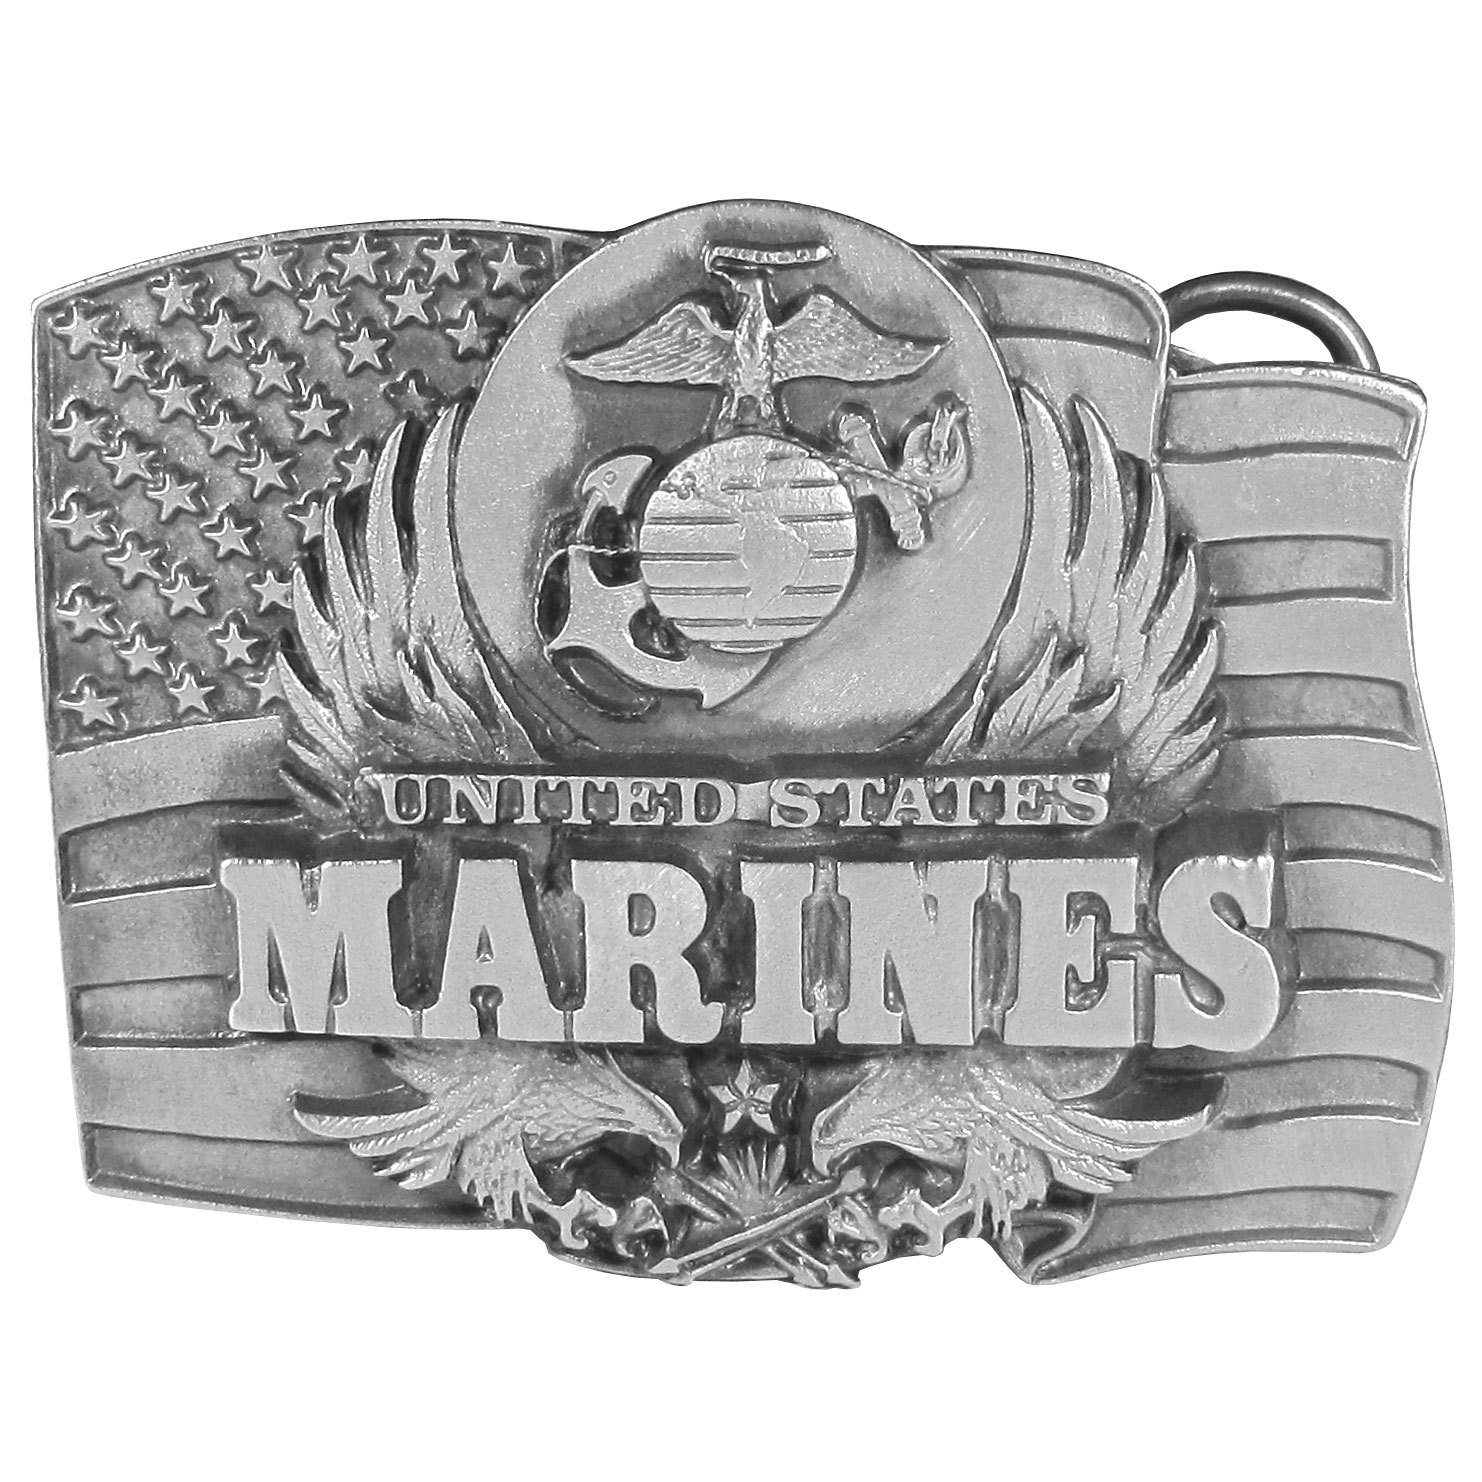 "Marines Antiqued Belt Buckle - United States Marines is proudly written on this belt buckle with the Marine's symbol and an American flag. On the back are the words, """"The Marines... The Few. The Proud. The Brave. This exquisitely carved buckle is made of fully cast metal with a standard bale that fits up to 2"" belts."